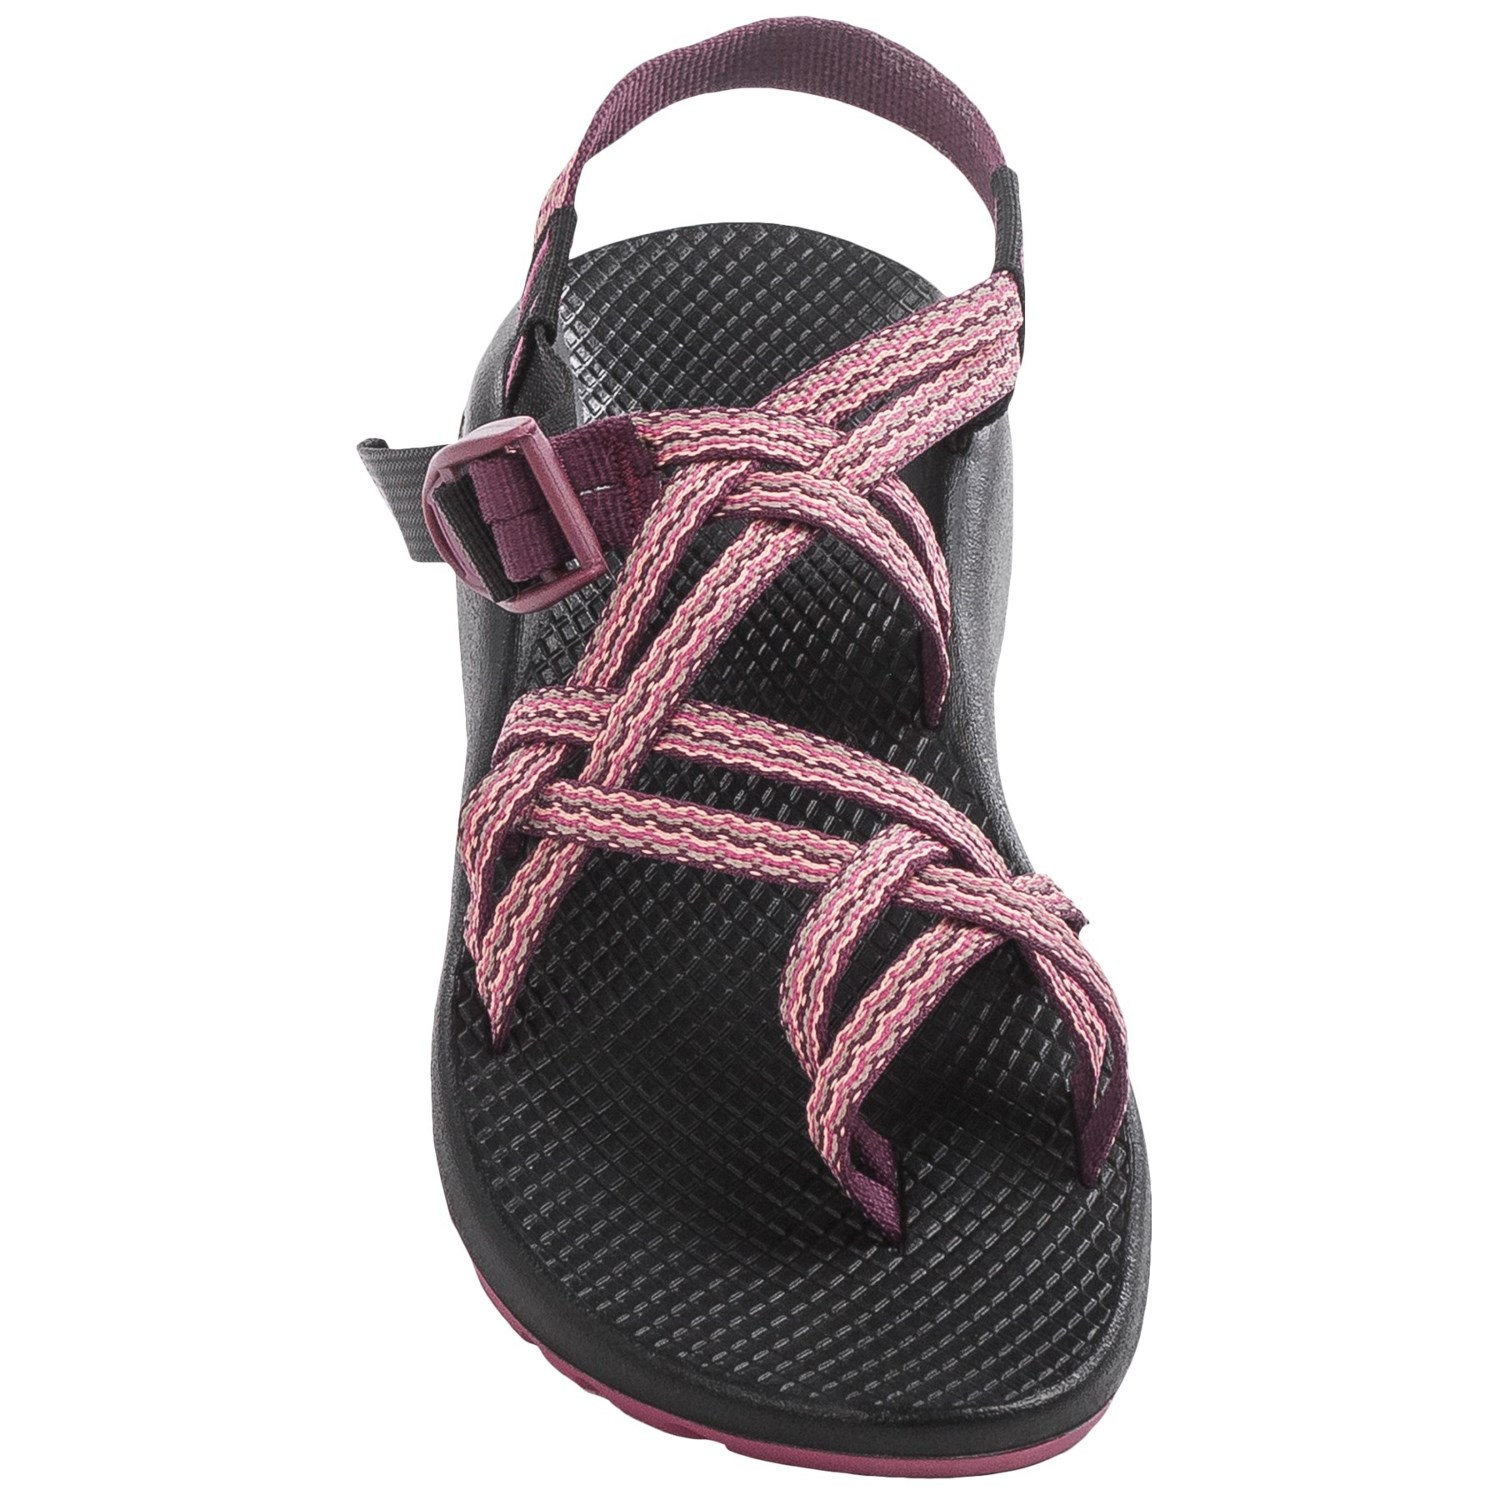 063f8e6bbf00 Chaco ZX 2® Classic Sport Sandals (For Women) - Save 42%